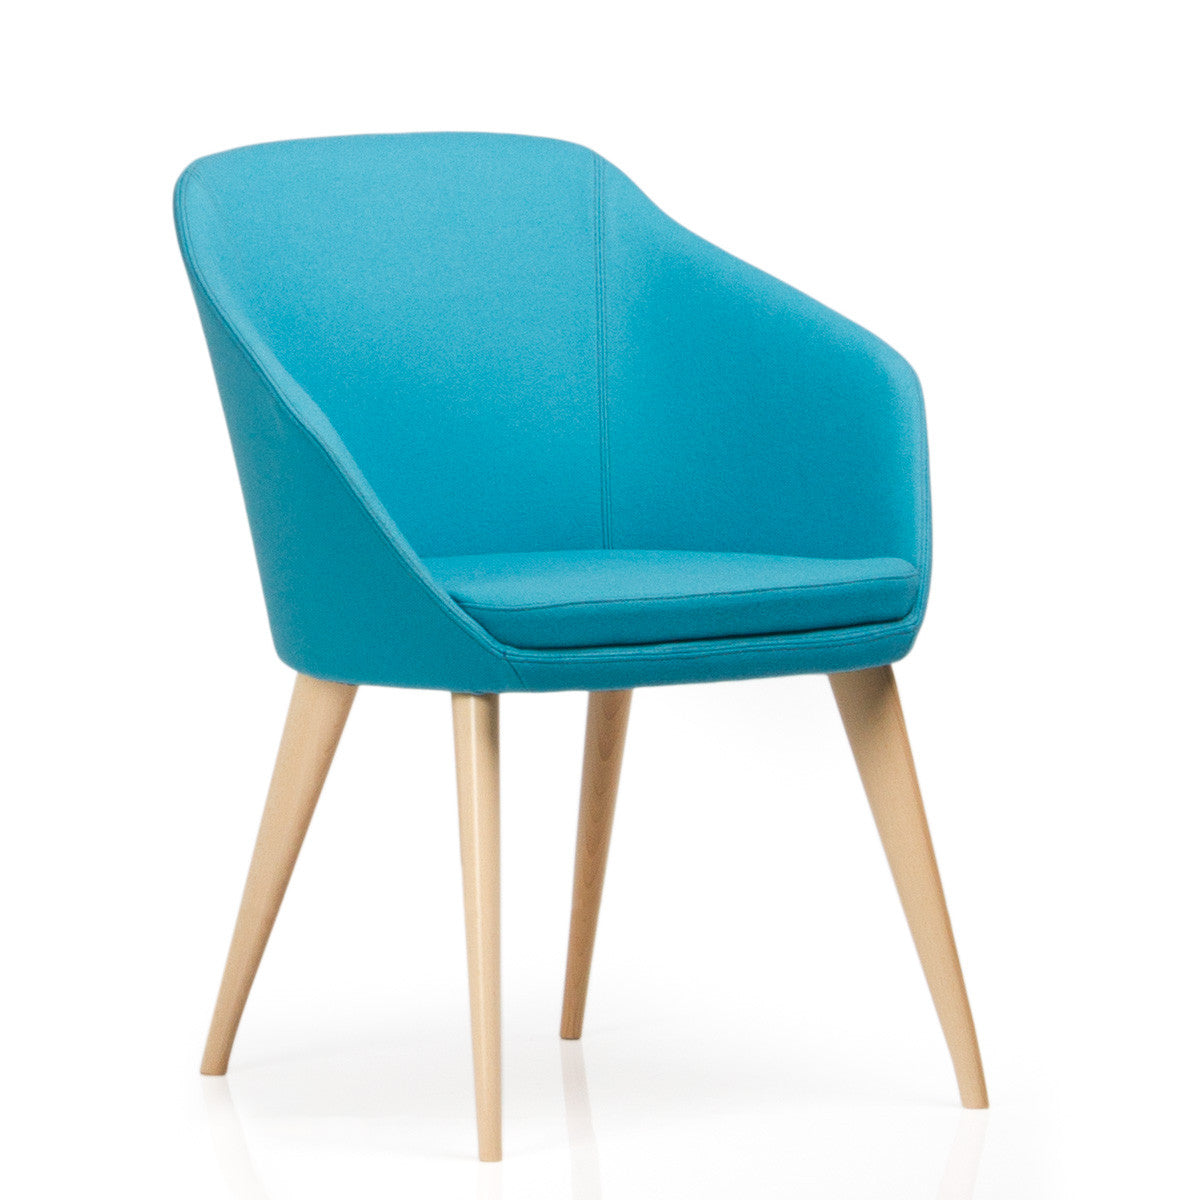 Annette Timber Frame Upholstered Tub Chair – love your office